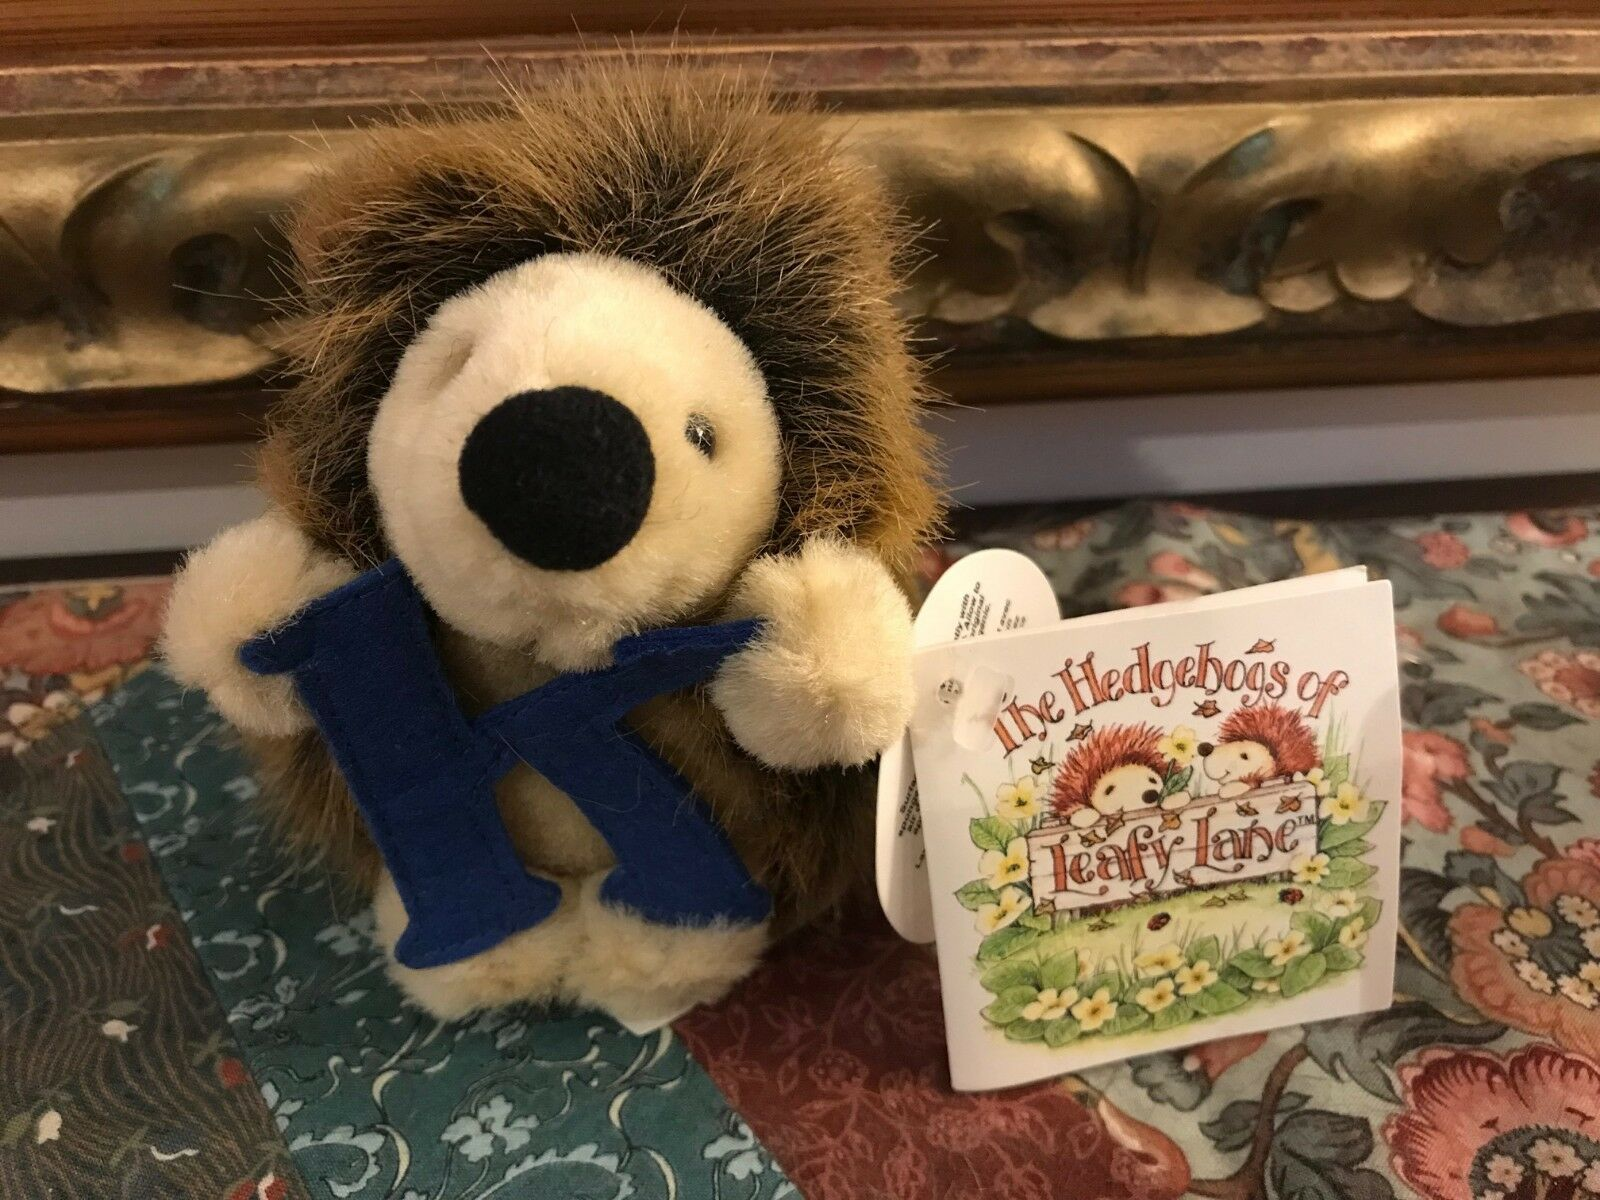 Russ Hedgehogs of Leafy Lane Hedgehog Plush Letter K 5 inch All Tags